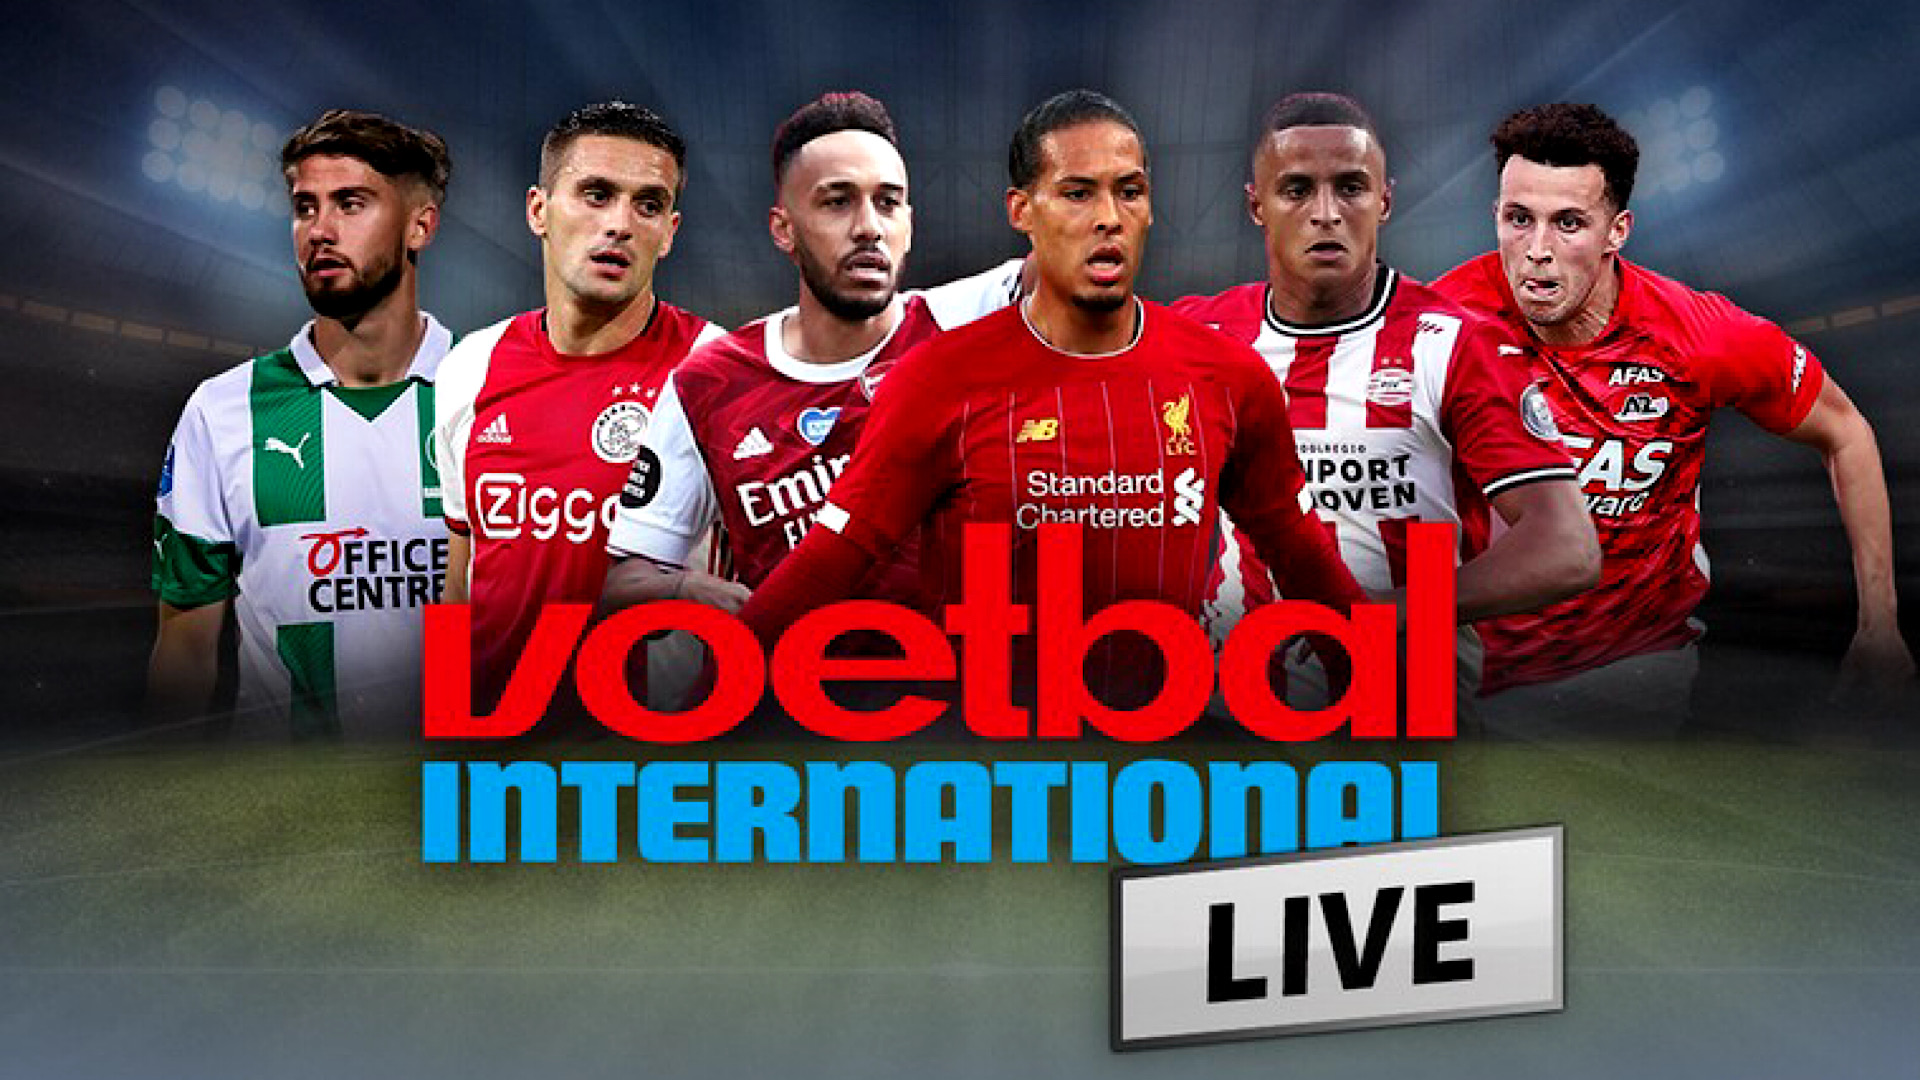 Voetbal International LIVE